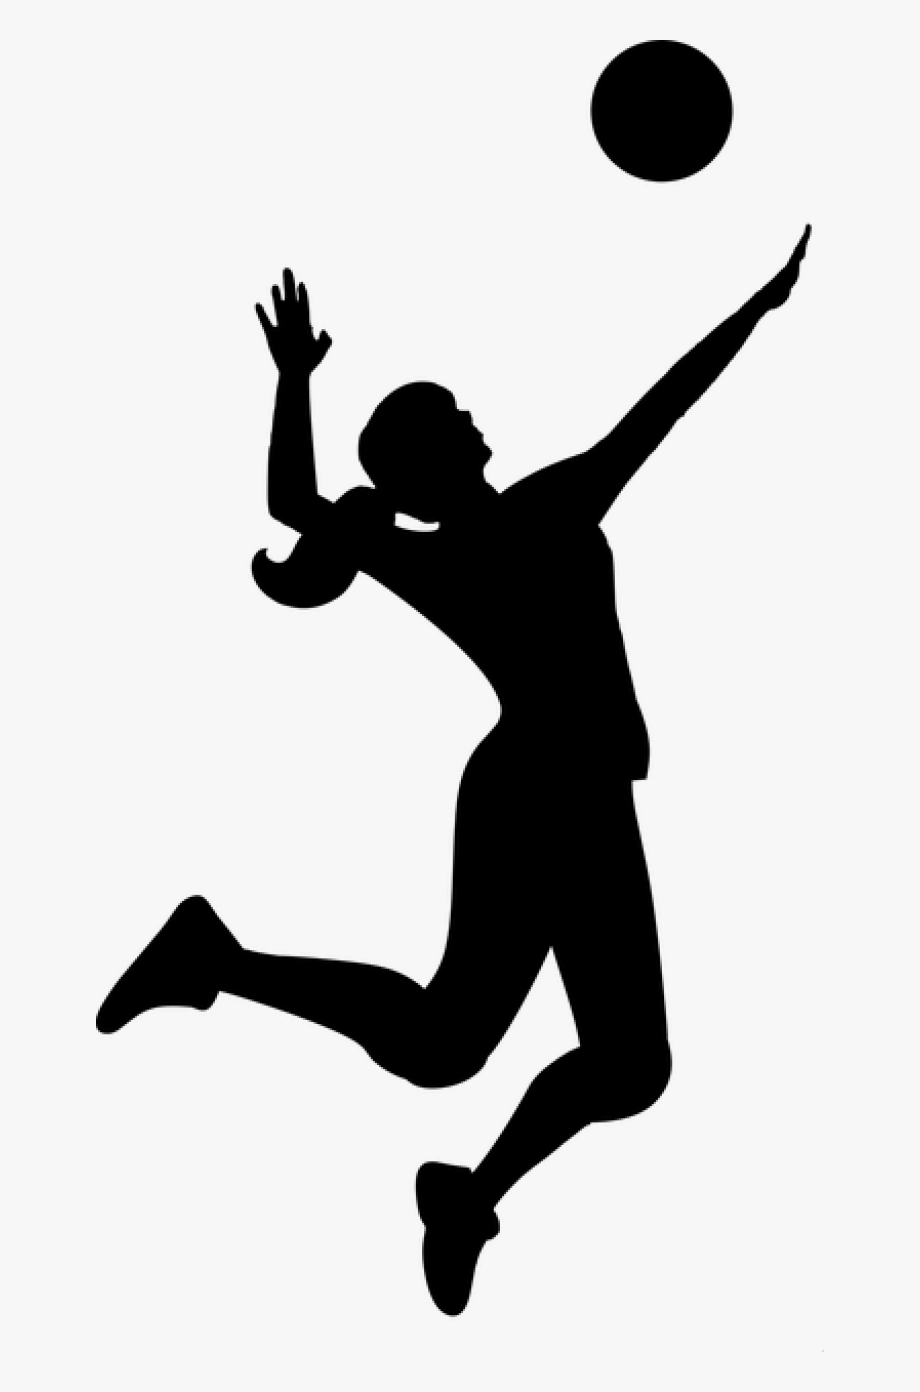 Volleyball clipart female volleyball player. Silhouette match sport